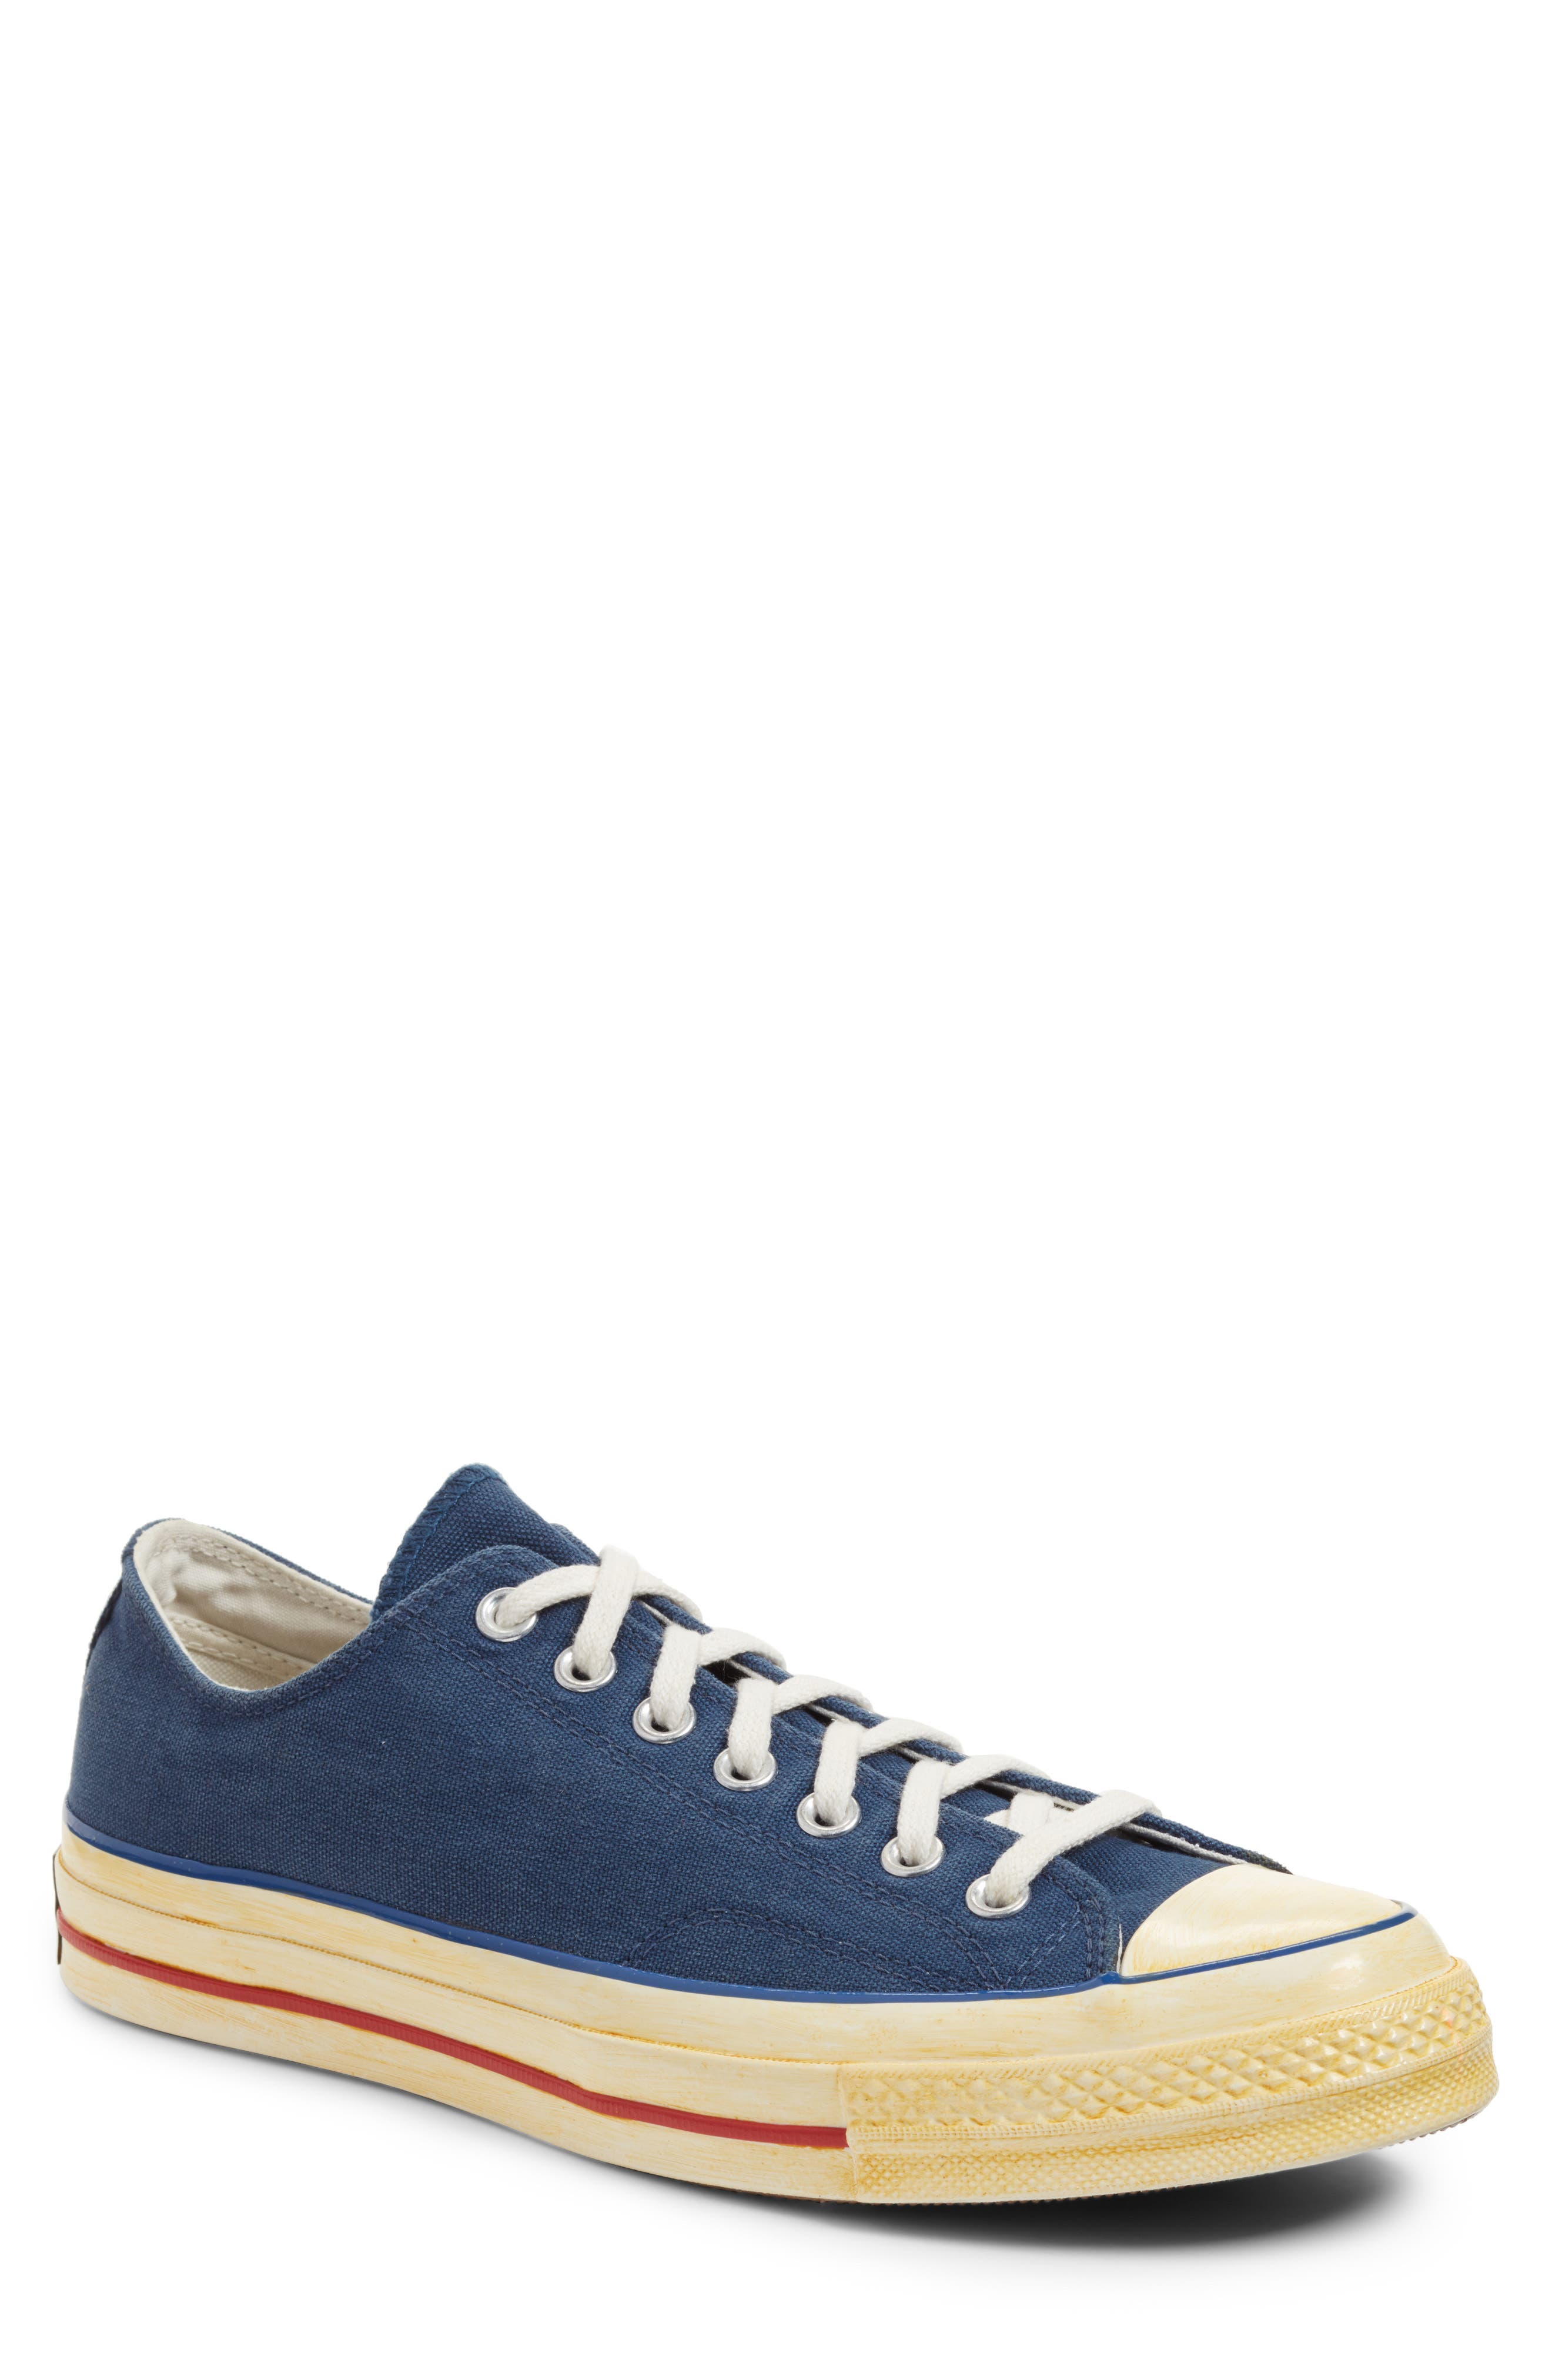 Alternate Image 1 Selected - Converse Chuck Taylor® All Star® 70 Low Top Sneaker (Men)